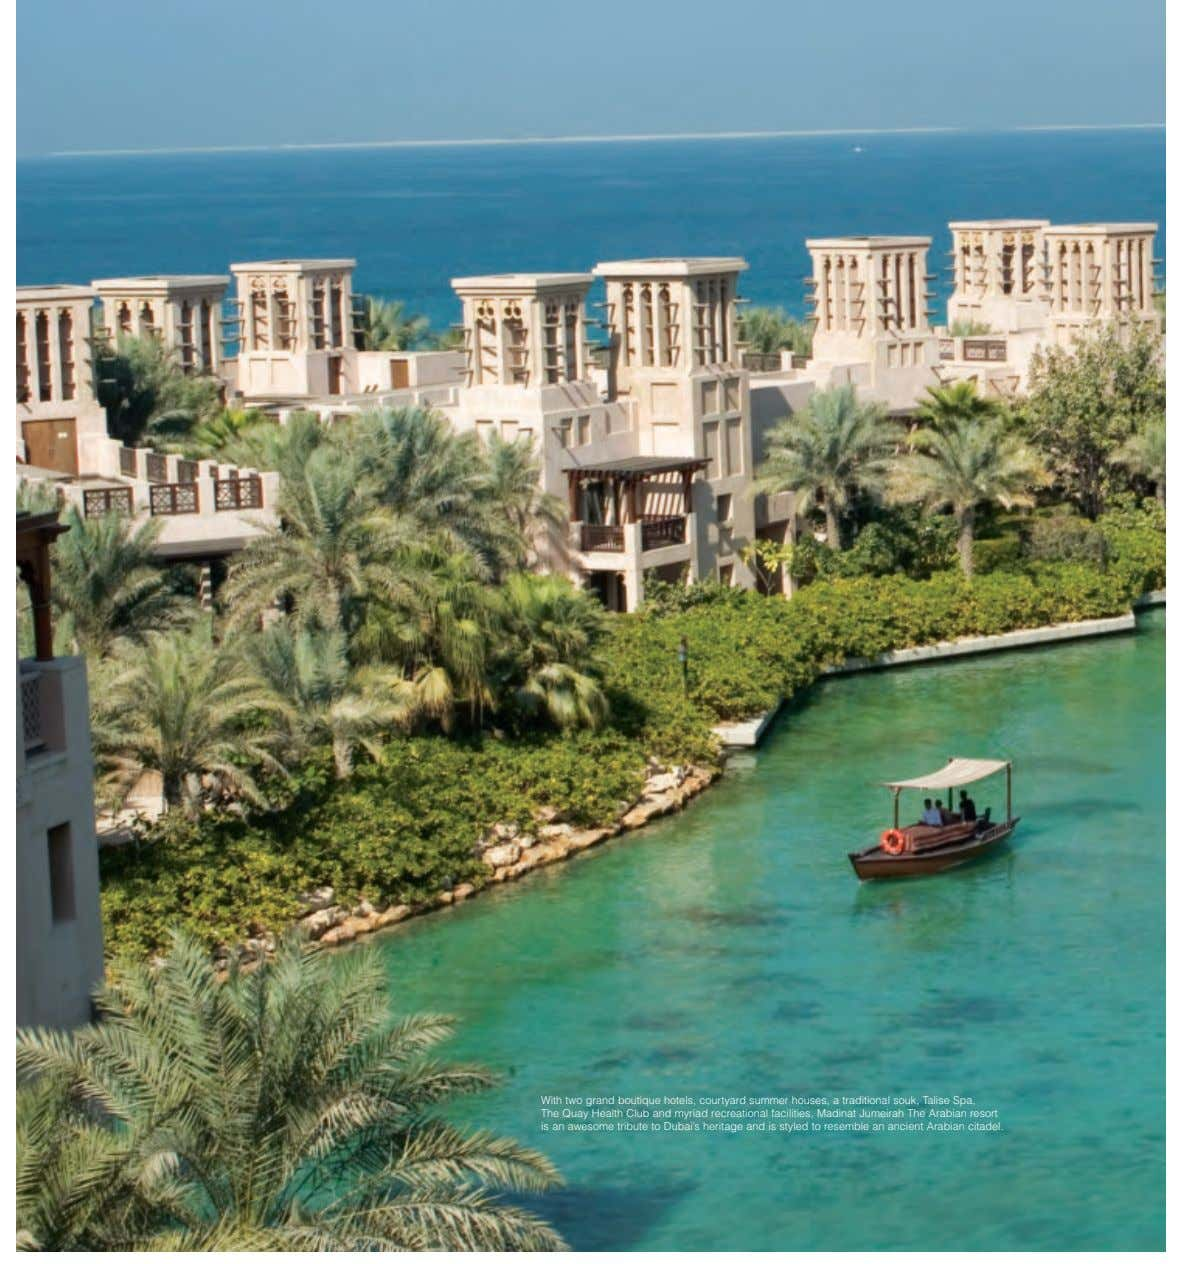 With two grand boutique hotels, courtyard summer houses, a traditional souk, Talise Spa, The Quay Health